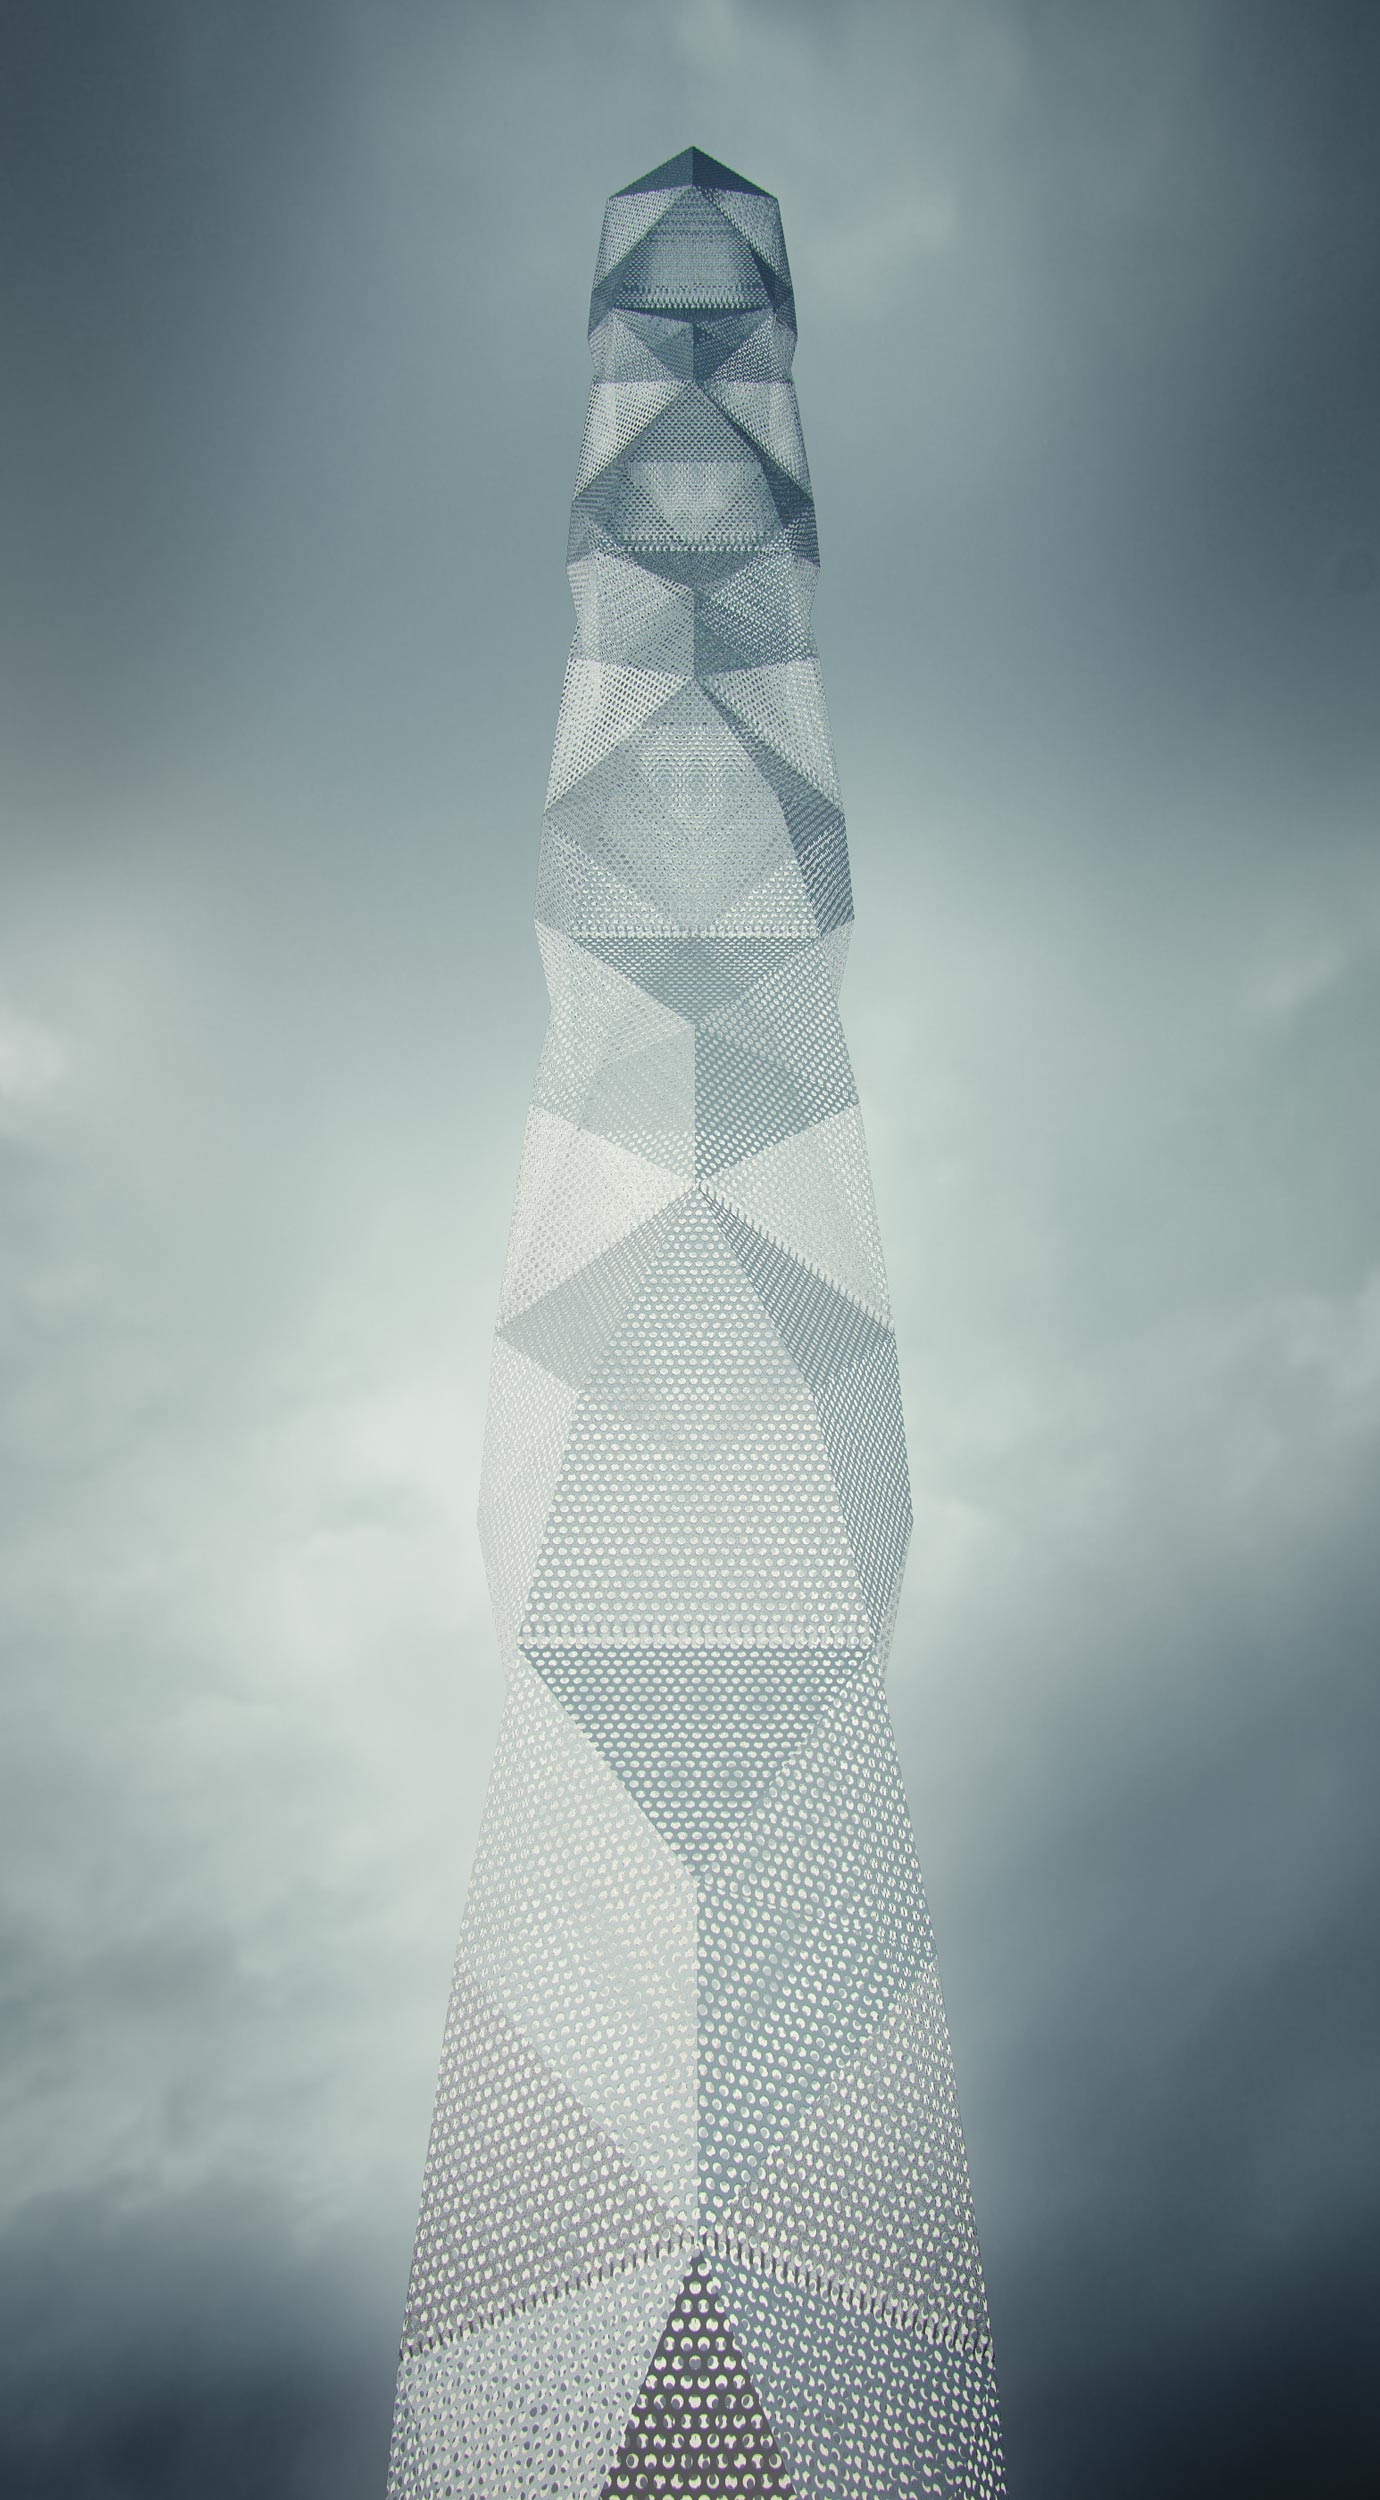 render-YAC-lamborghini-road-monument-competition-young-architects-competitions-perforated-sheet